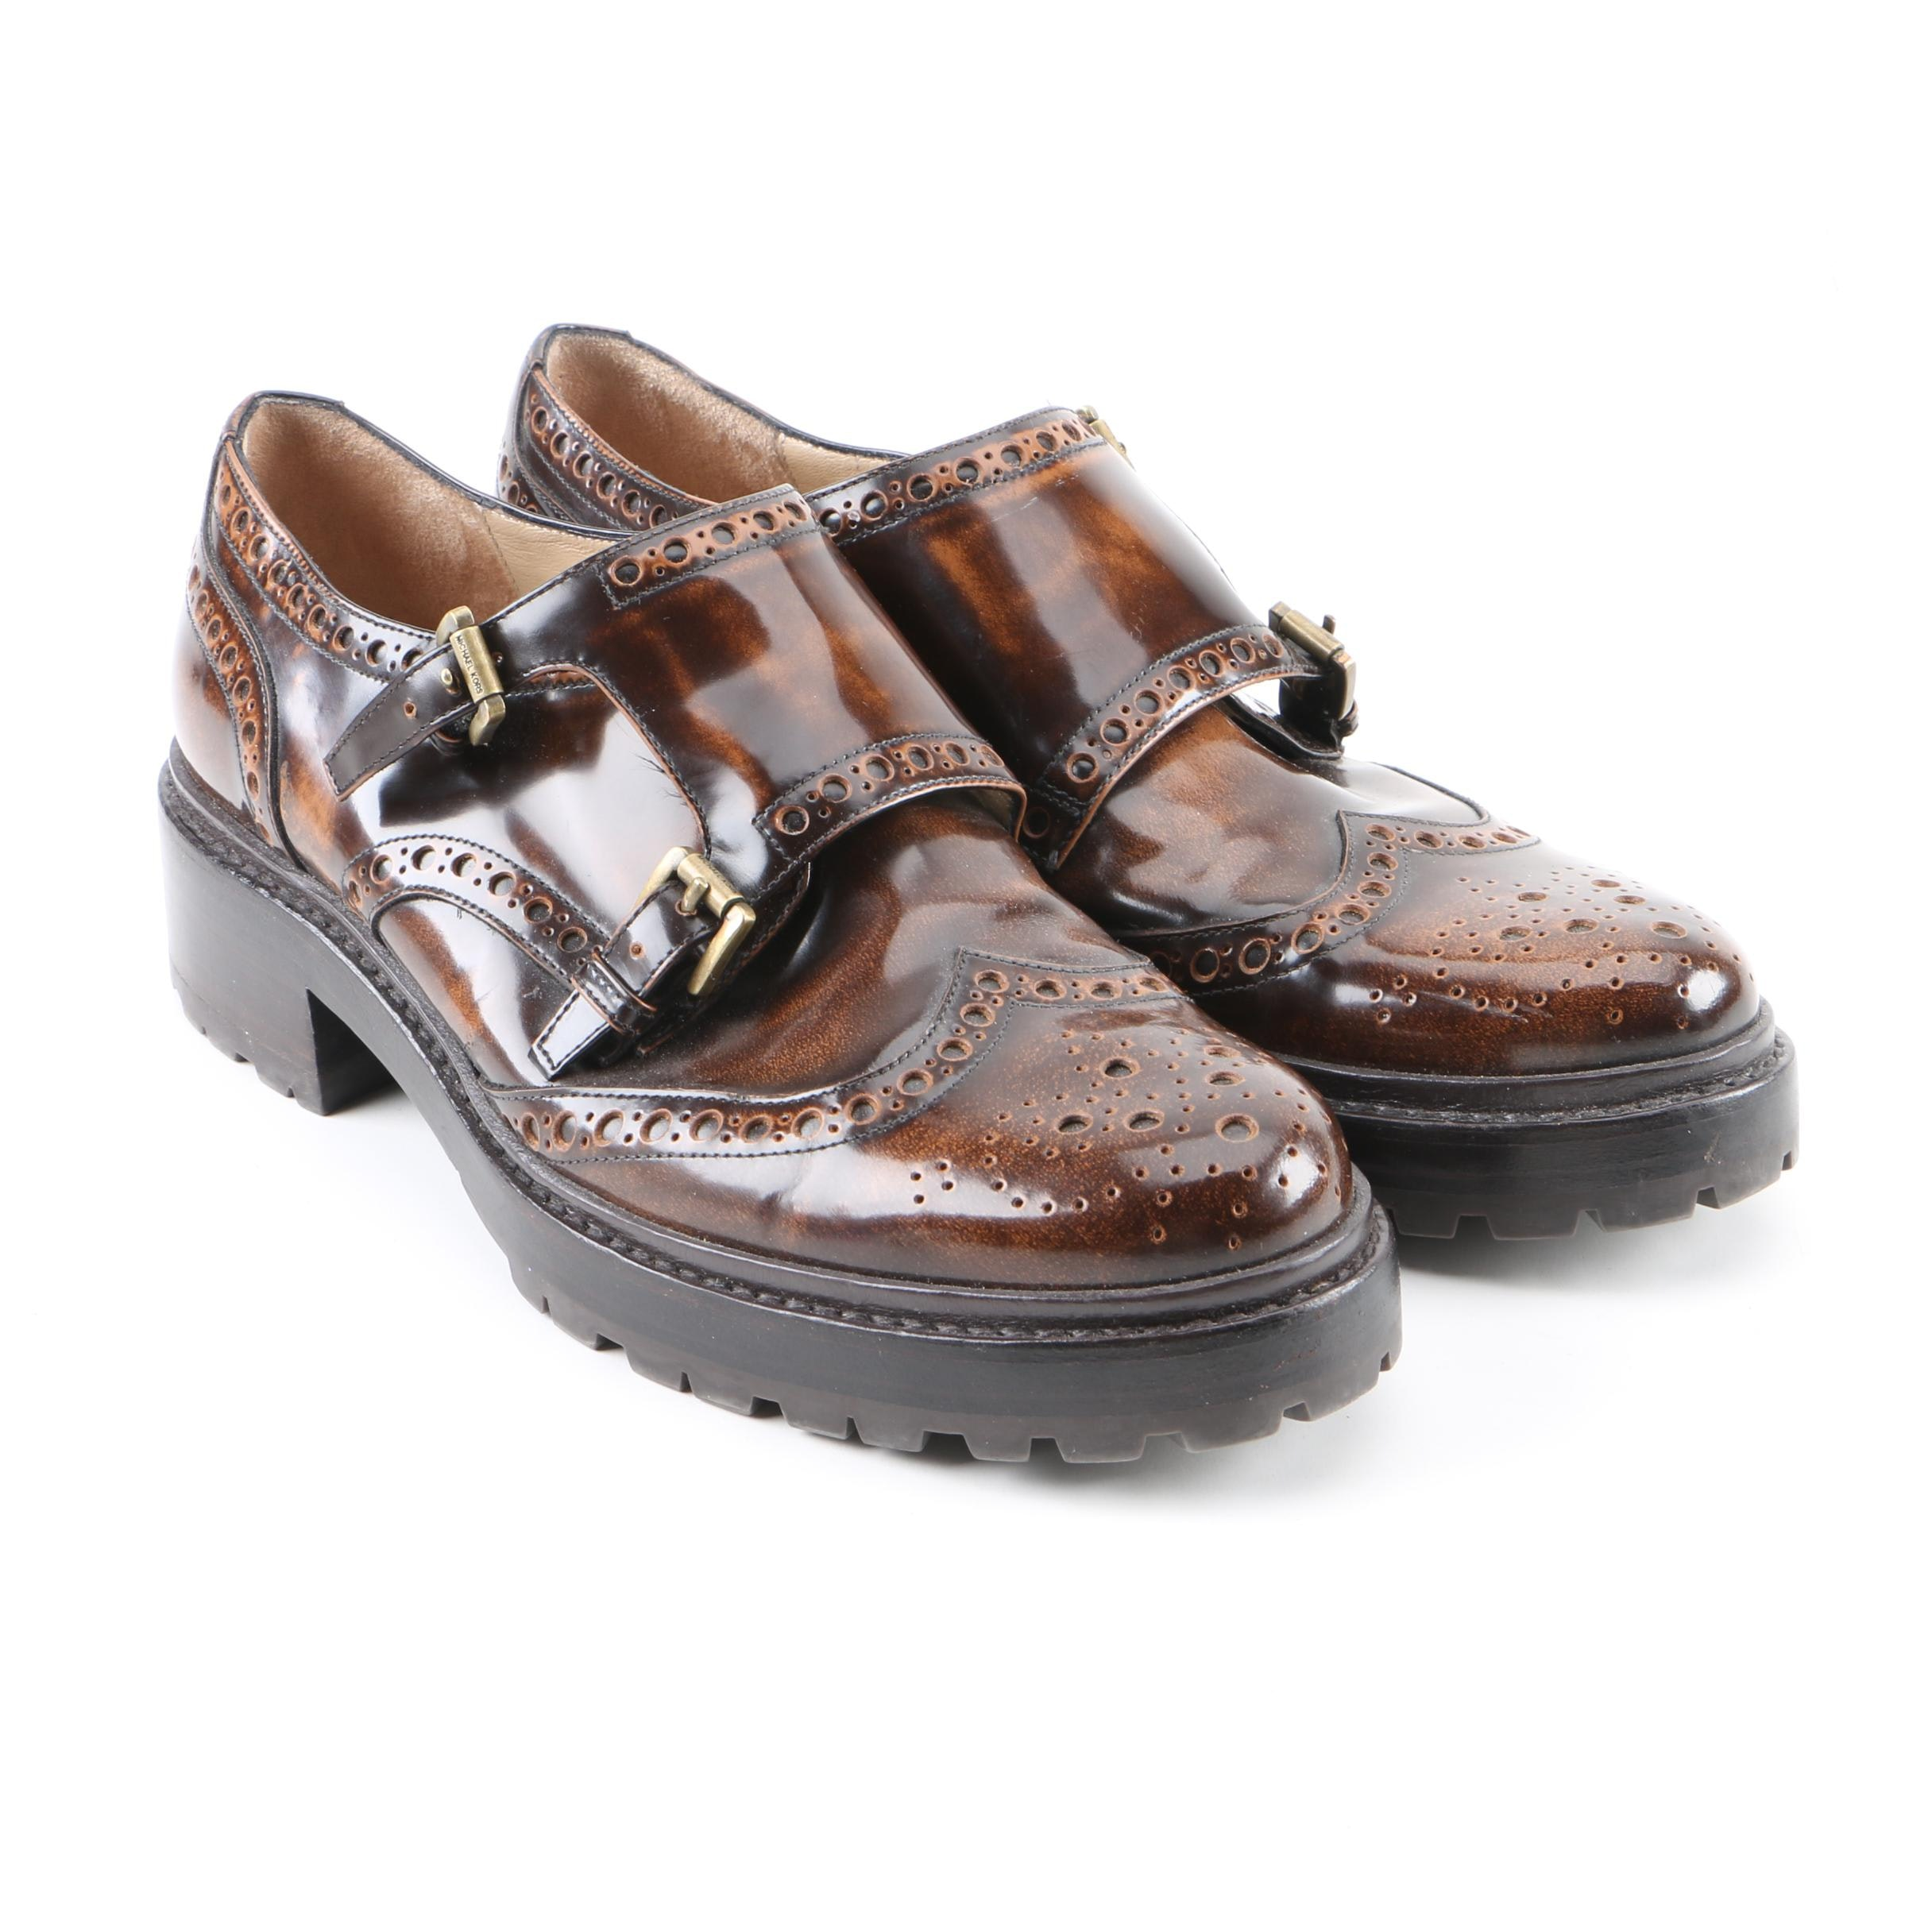 Women's Michael Kors Collection Brown Leather Double Monk Strap Wingtip Shoes